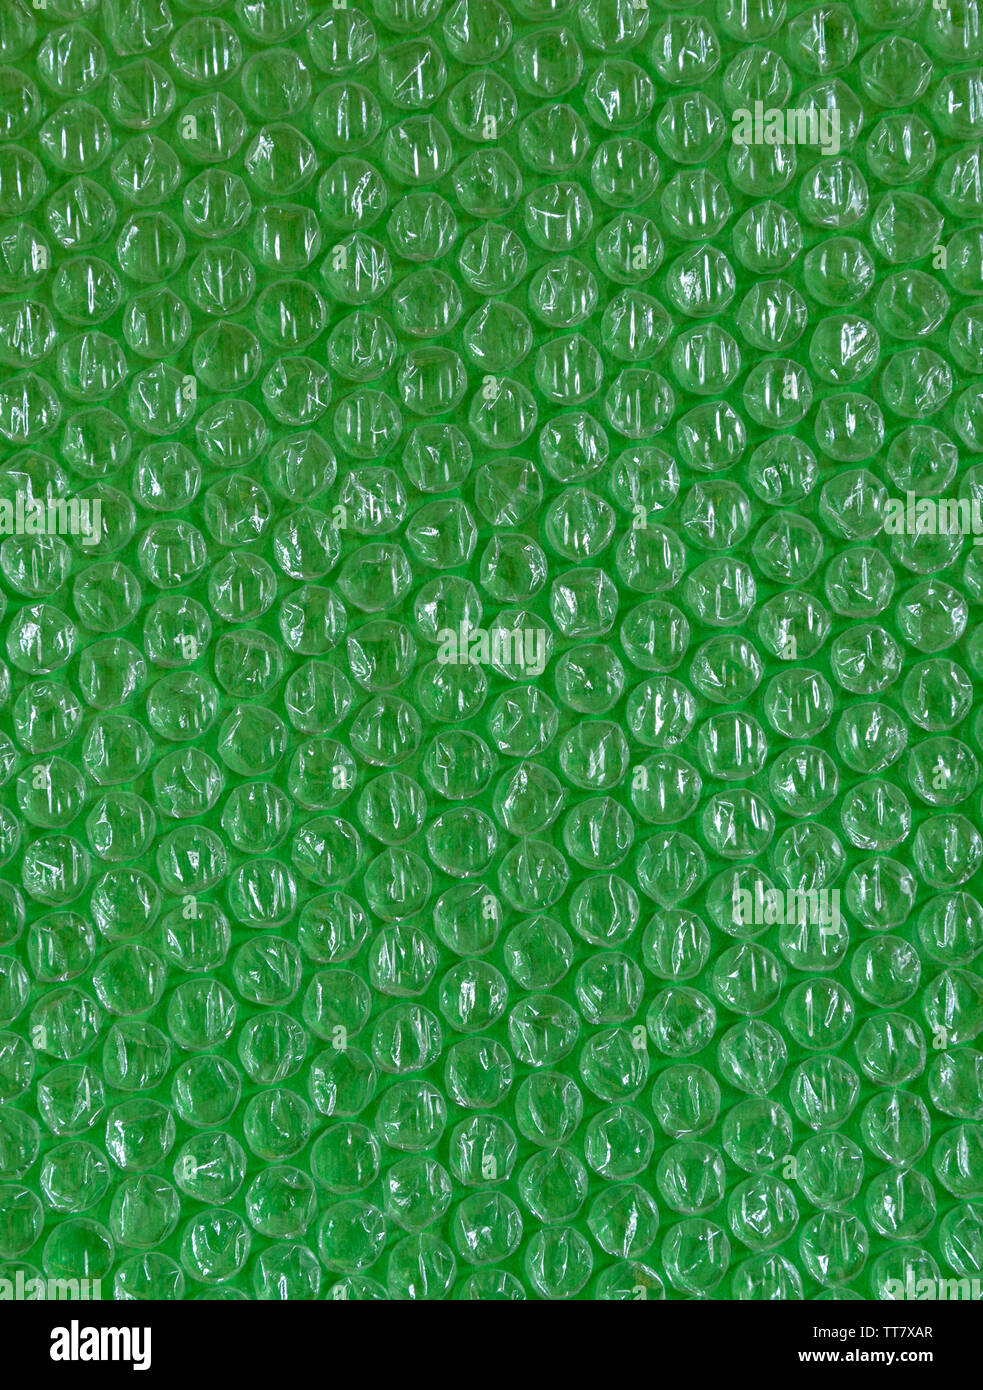 Cellophane and plastic background. The texture of old plastic's packing with balls. Image green and white tones. - Stock Image